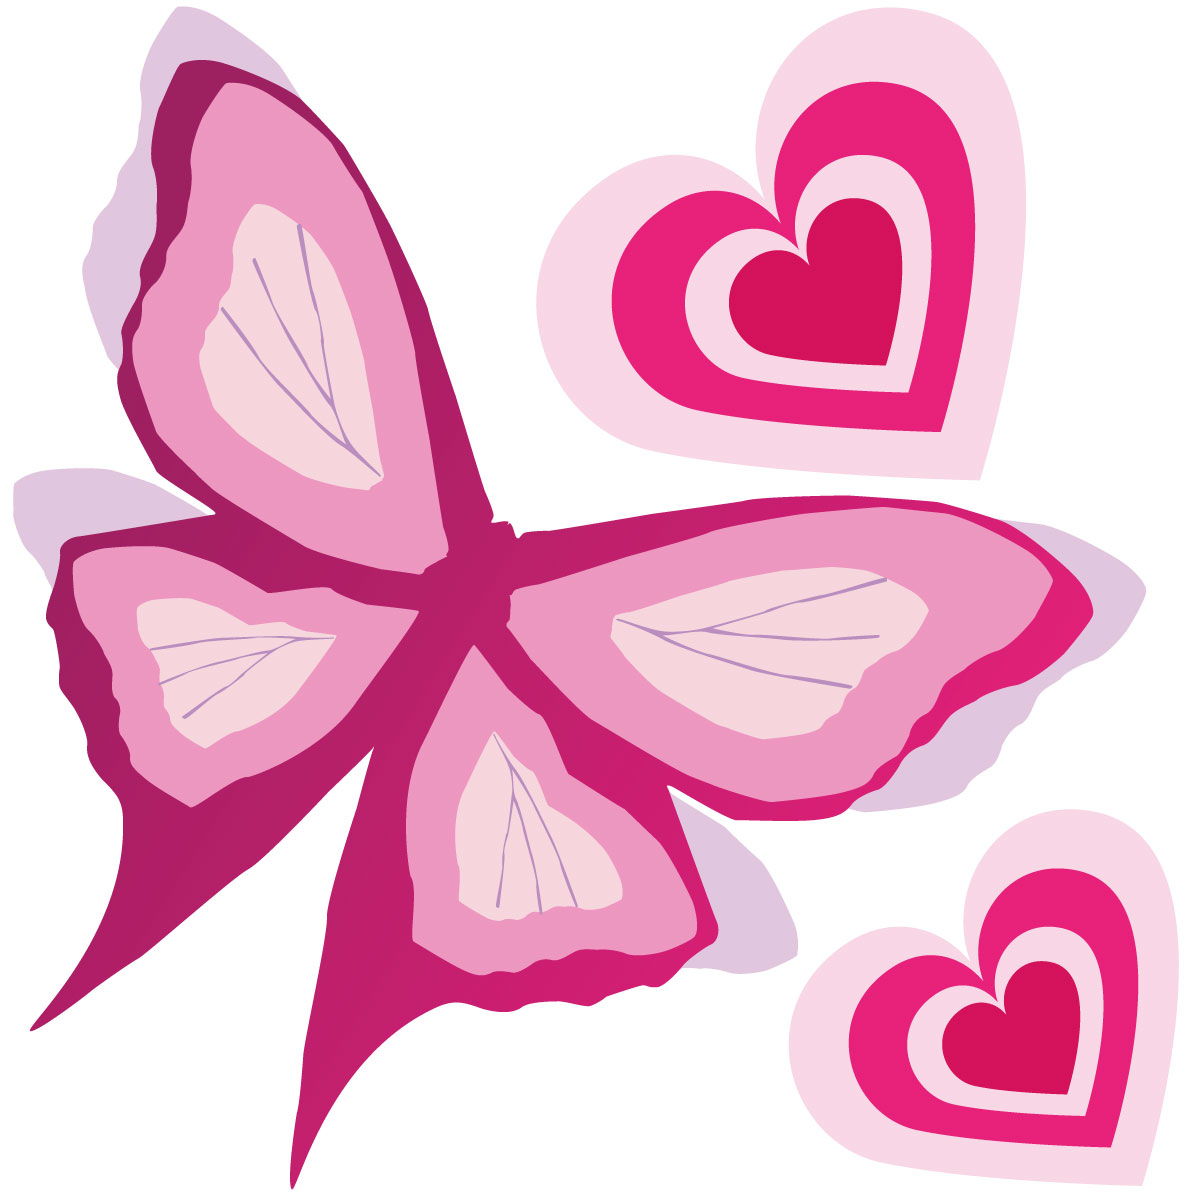 pink butterfly border create butterfly wall decals pink 2.jpg Animated Pink Butterflies